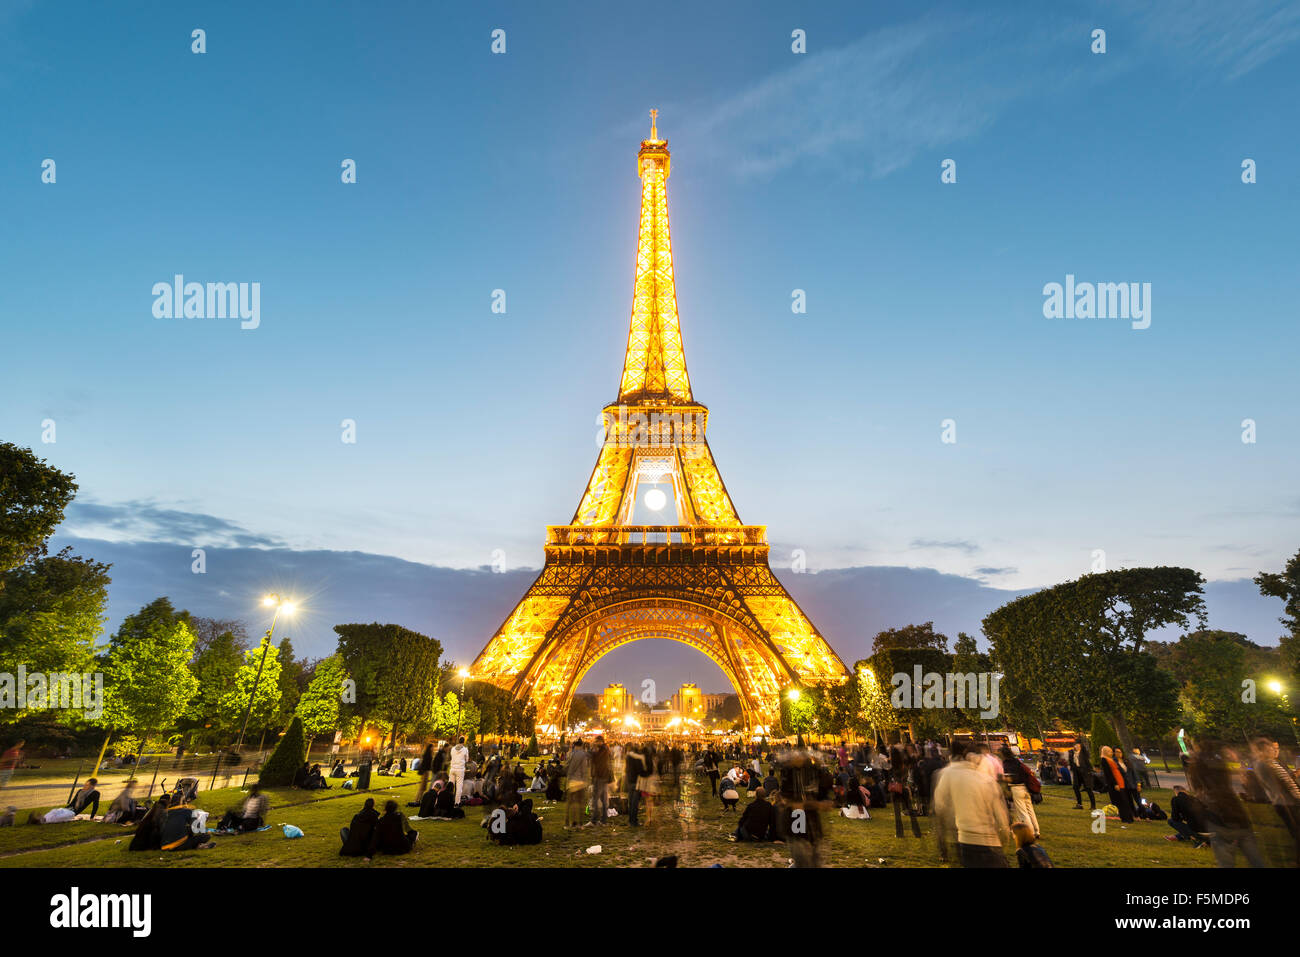 Illuminated Eiffel Tower at dusk, tour Eiffel, Champ de Mars, Paris, Ile-de-France, France - Stock Image